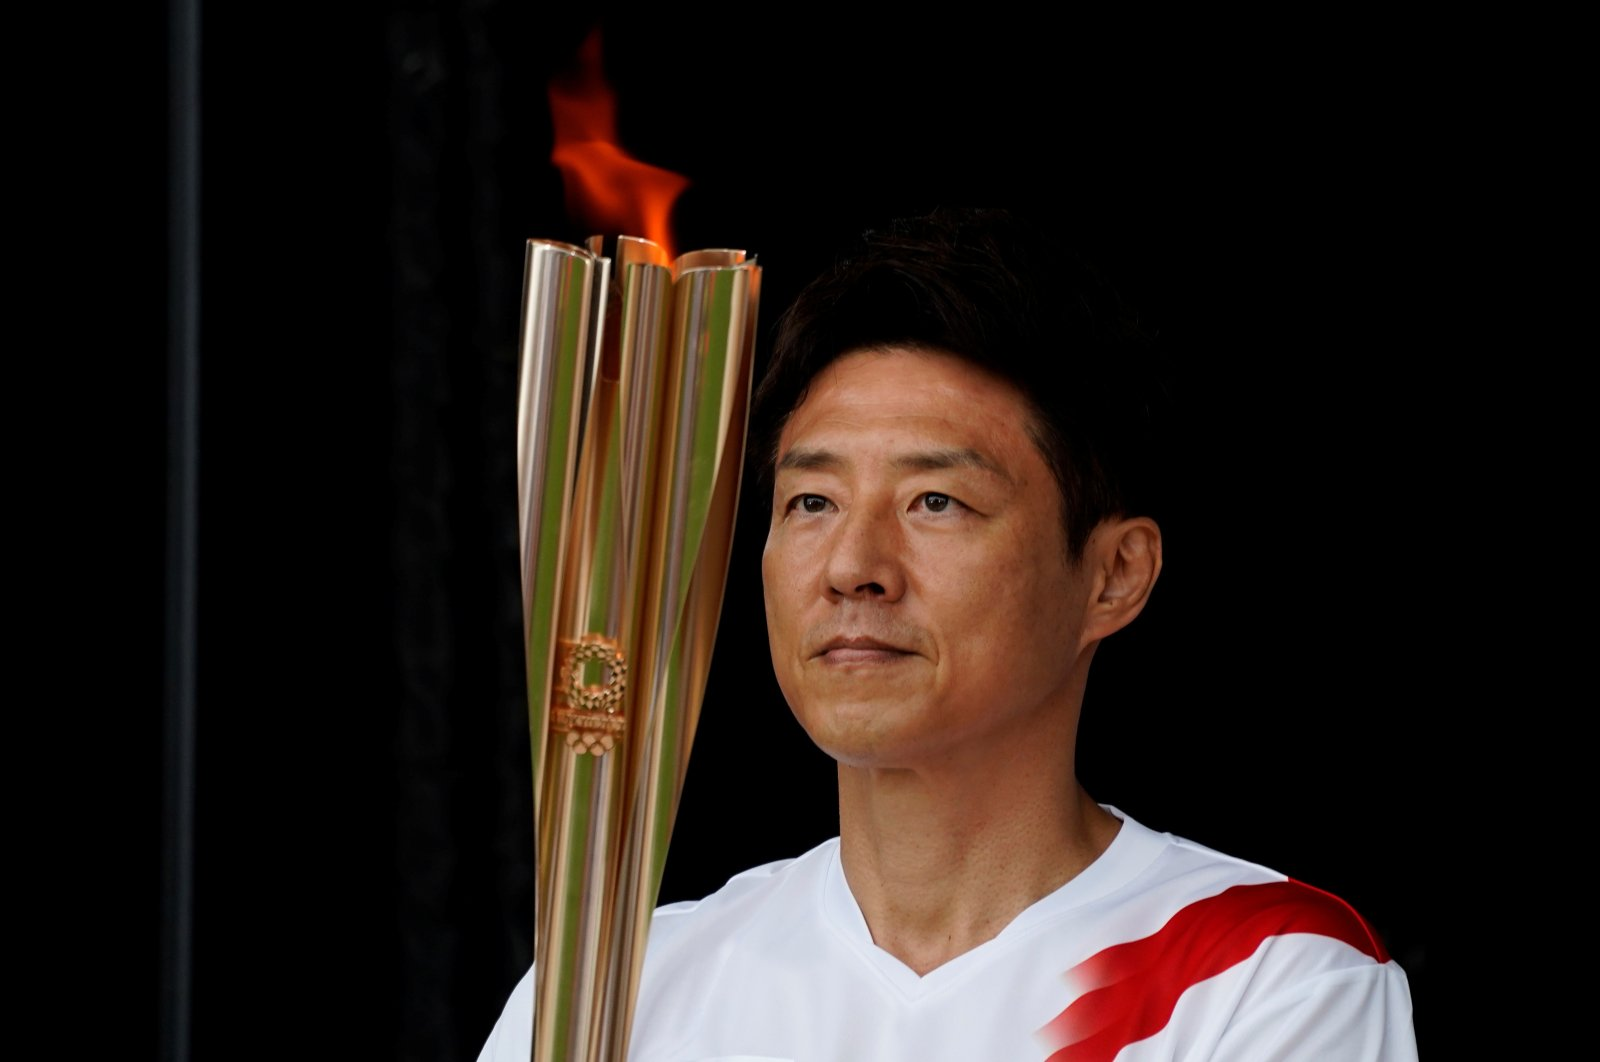 Shuzo Matsuoka, Tokyo's first torchbearer, holds the torch at a lighting ceremony during which torchbearers pass the flame to the next one via a torch kiss, after their relay on a public road was canceled due to the coronavirus pandemic, at the Tokyo 2020 Olympic torch relay celebration in Tokyo, Japan, July 9, 2021. (Reuters Photo)